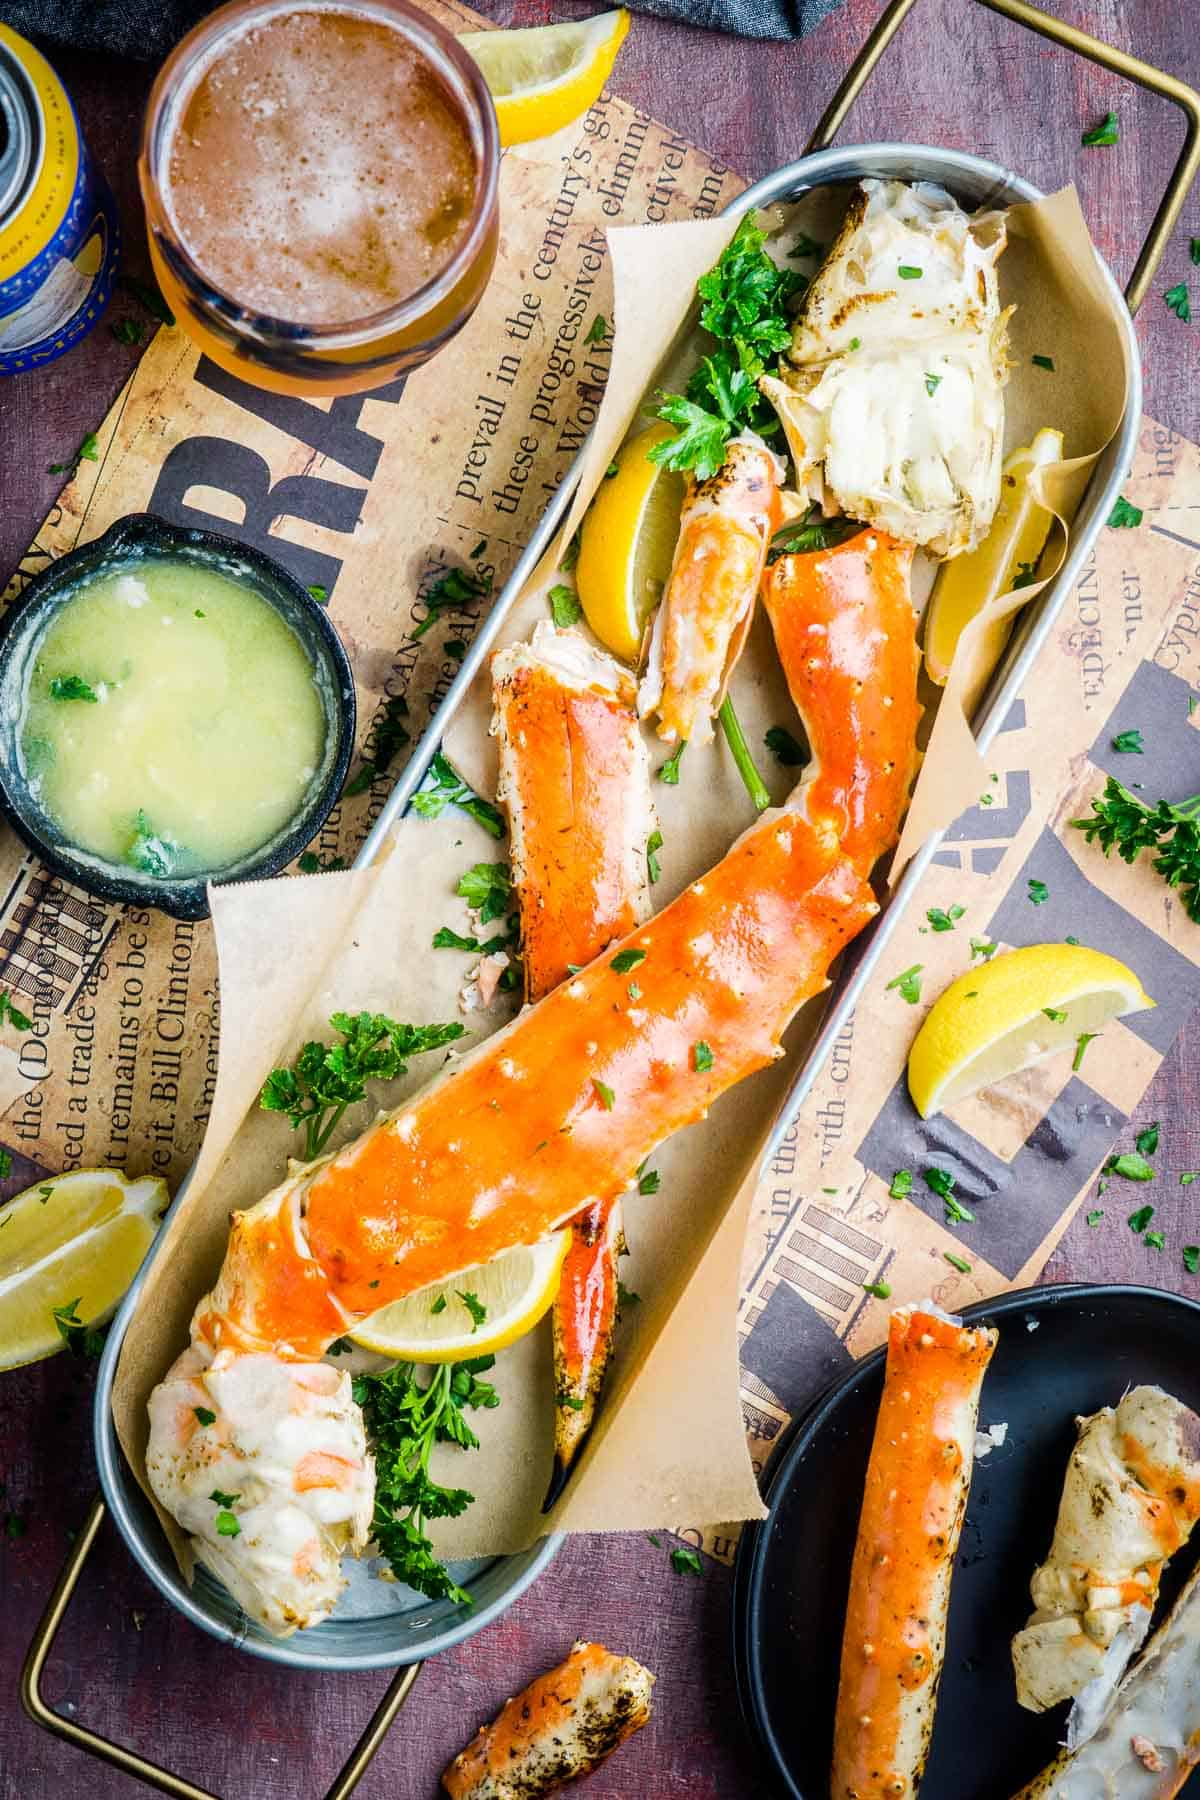 platter of king crab legs next to melted garlic butter skillet, lemons, and glass of beer